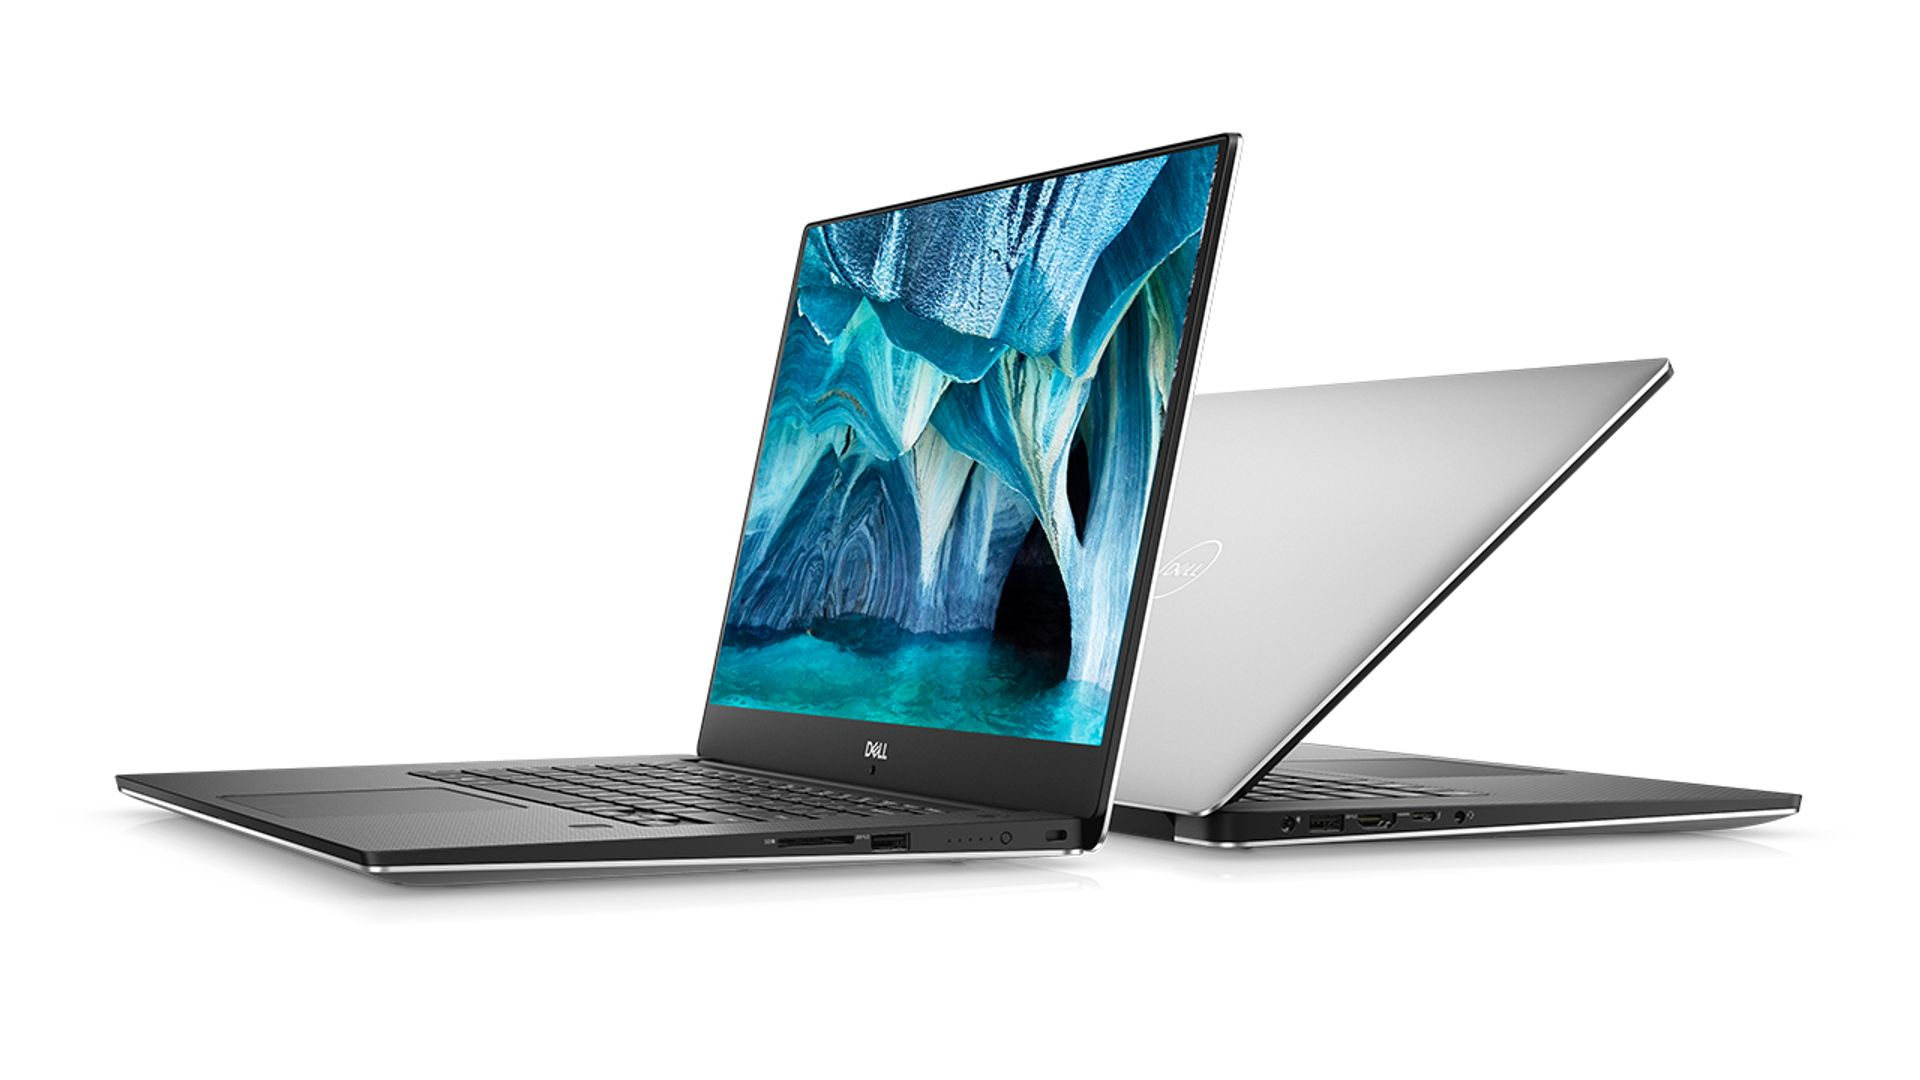 Produktgennemgang for XPS 15 bærbar pc (2019) 52